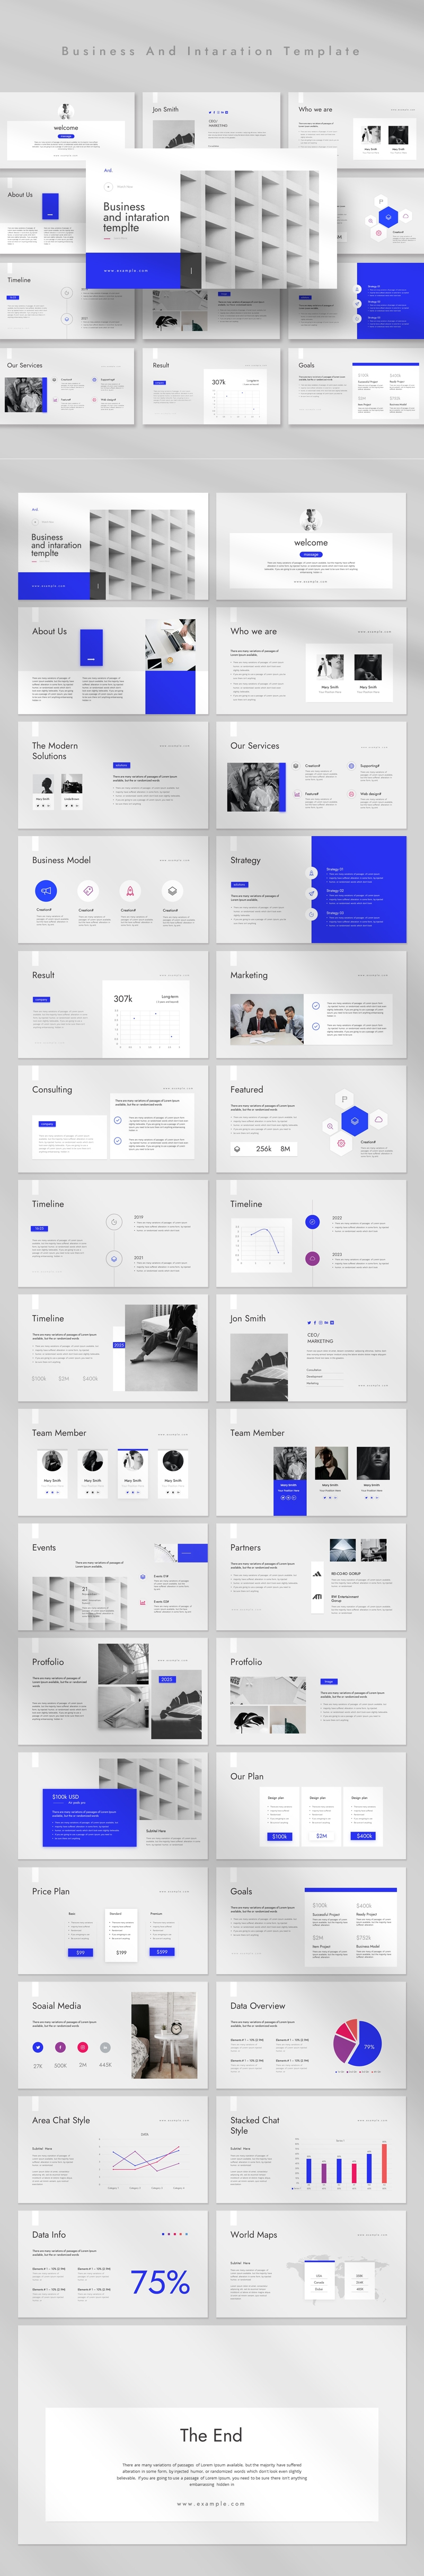 Business And Intaration  Powerpoint Template